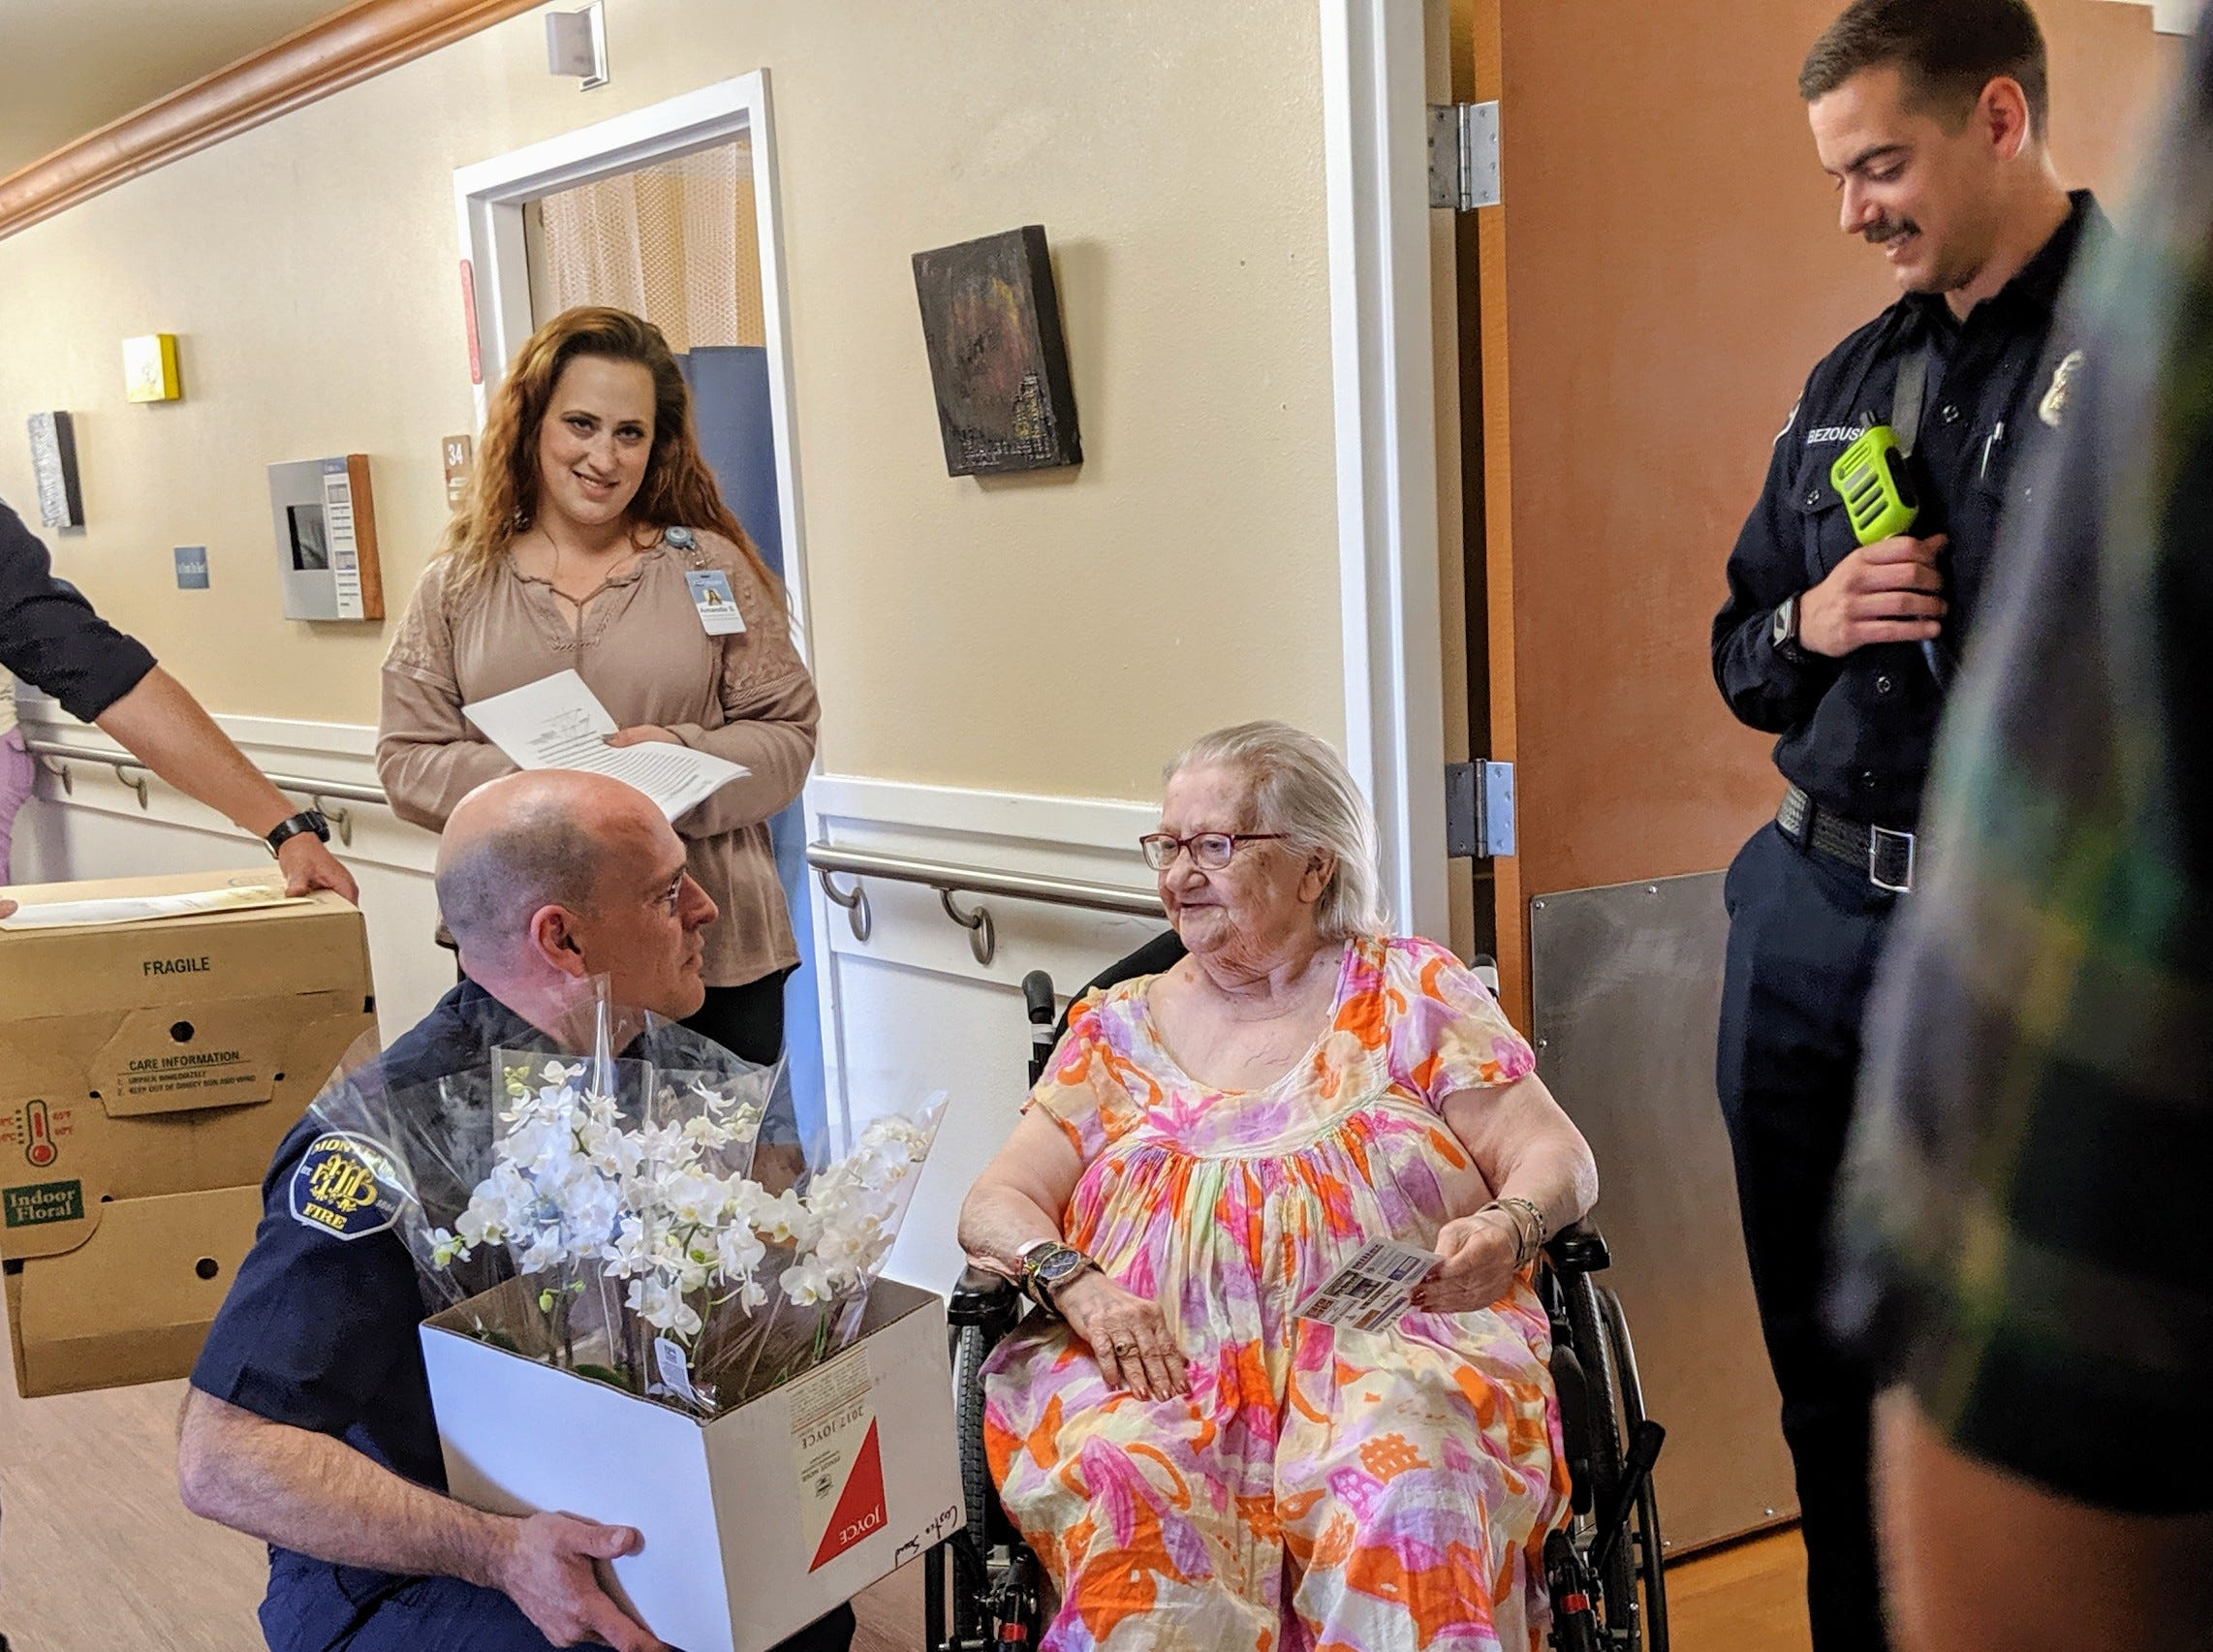 On Sunday, Monterey firefighters helped deliver Mother's Day flowersflowers to senior women living in long-term care facilities.